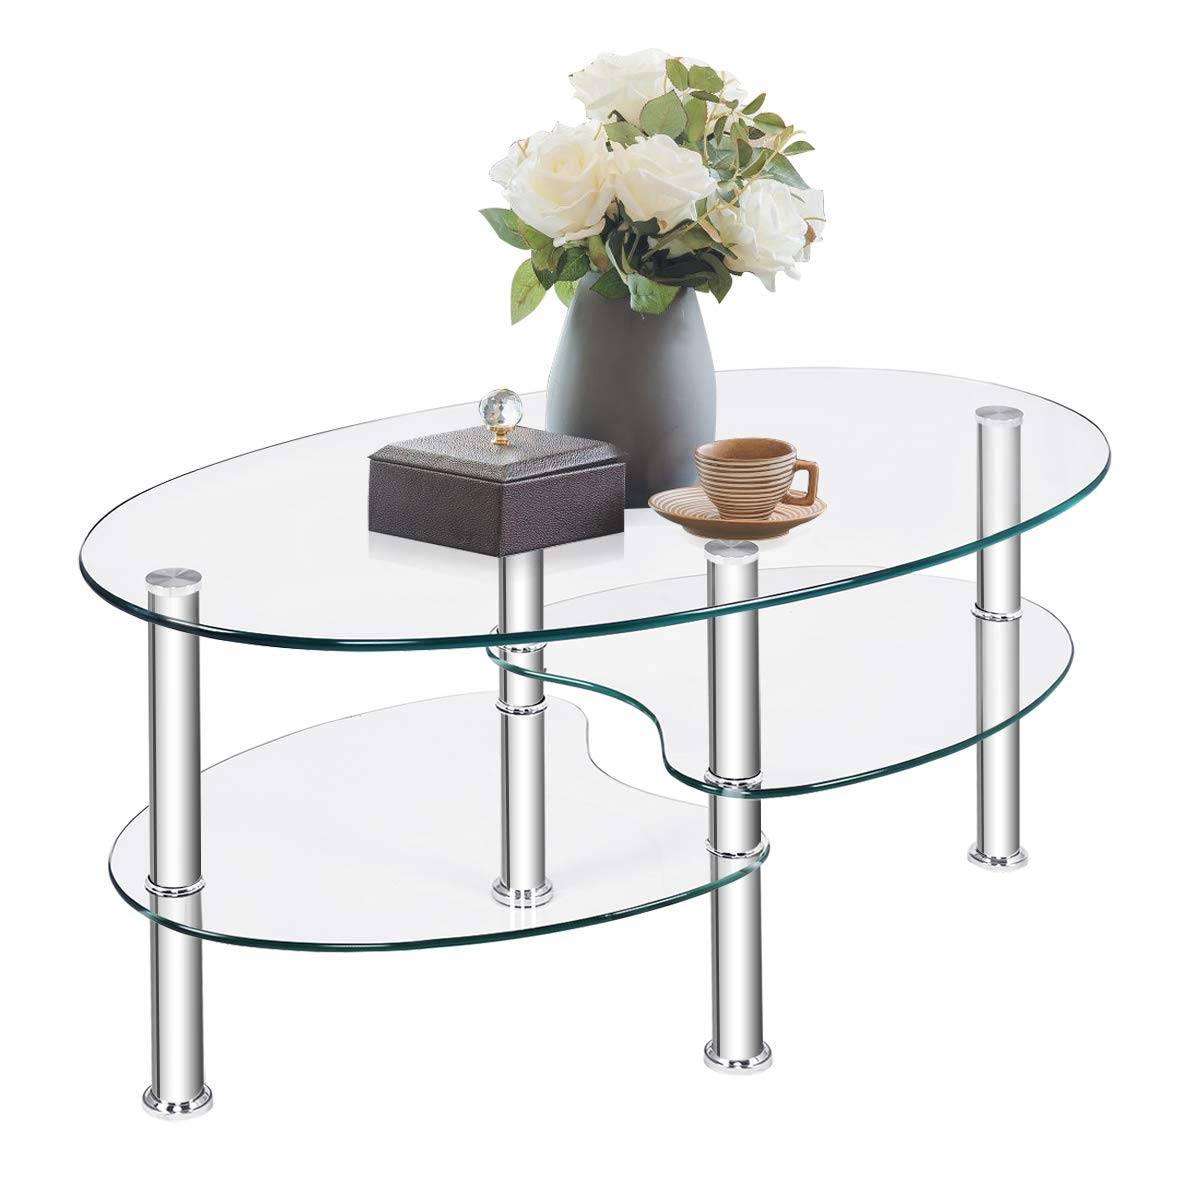 TANGKULA Glass Coffee Table, Modern Furniture Decor 2-Tier Modern Oval Smooth Glass Tea Table End Table for Home Office with 2 Tier Tempered Glass Boards & Sturdy Chrome Plated Legs by Tangkula